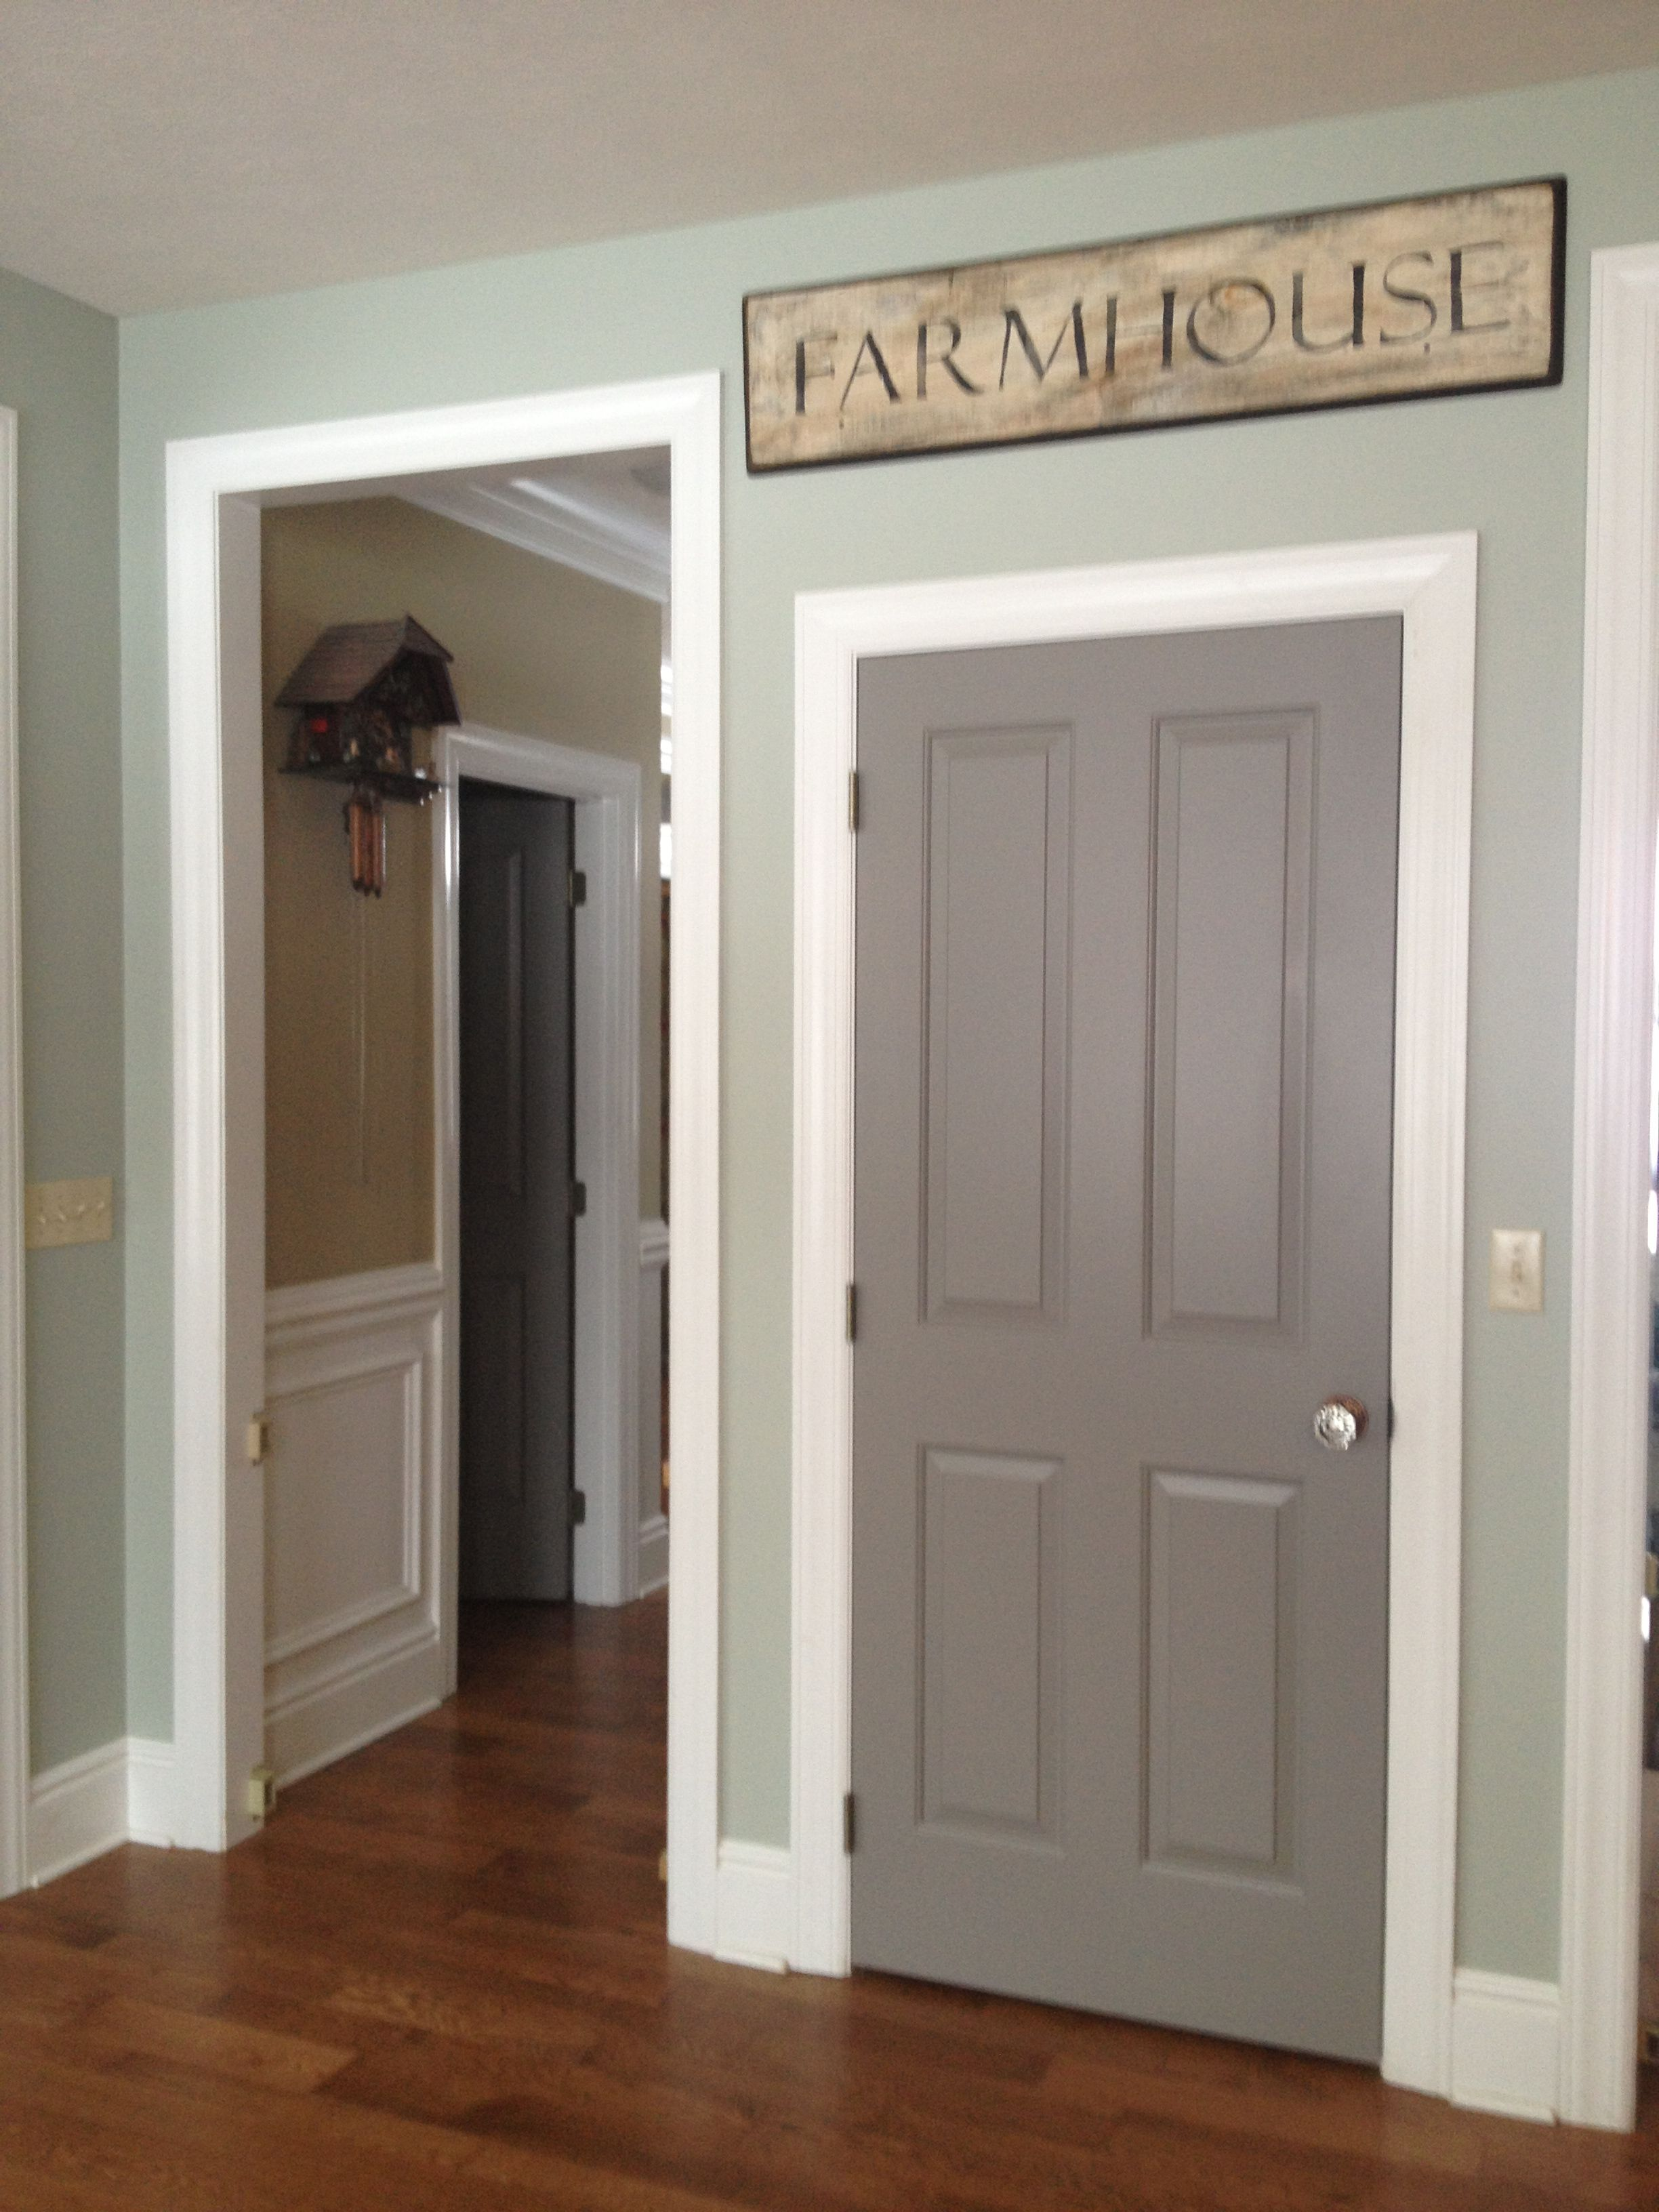 Sherwin Williams Dovetail Grey The Door Color Is What I Would Like To Paint Vanity Cabinet